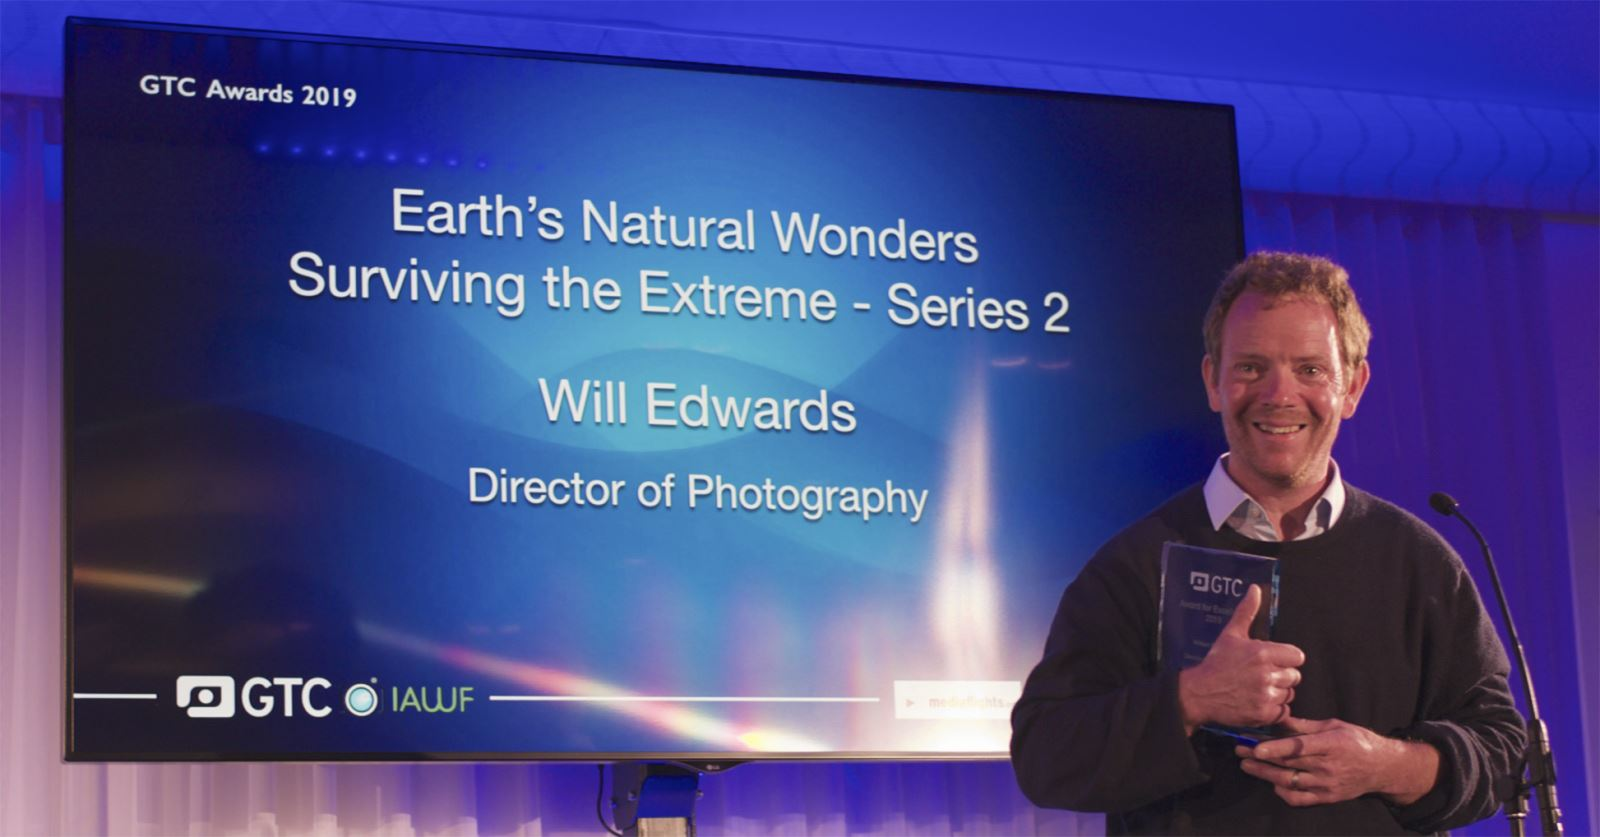 GTC member Will Edwards collected his second GTC Award for Excellence – this one for 'Earth's Natural Wonders'